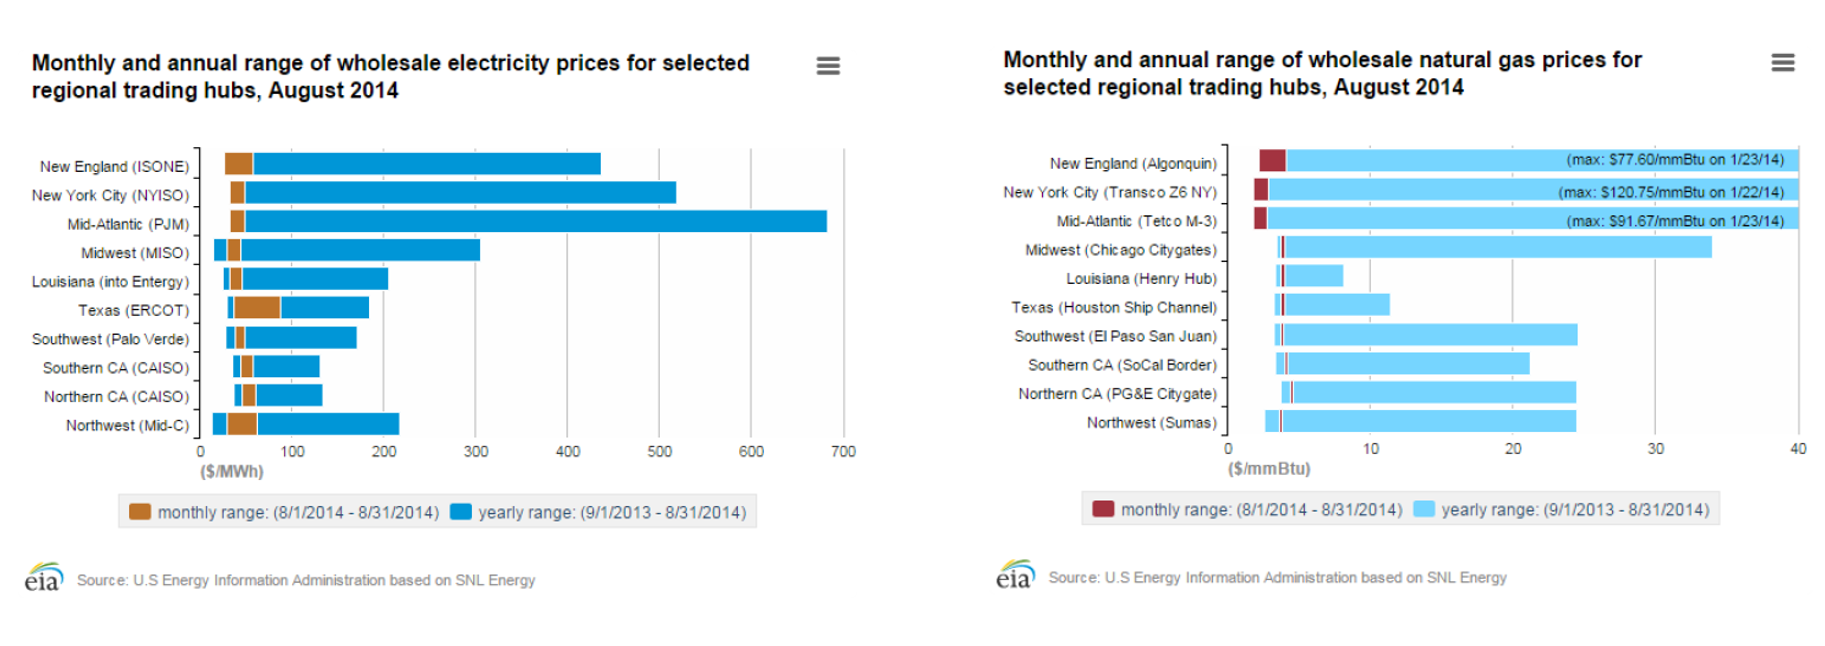 Monthly and annual range of wholesale electricity prices for selected